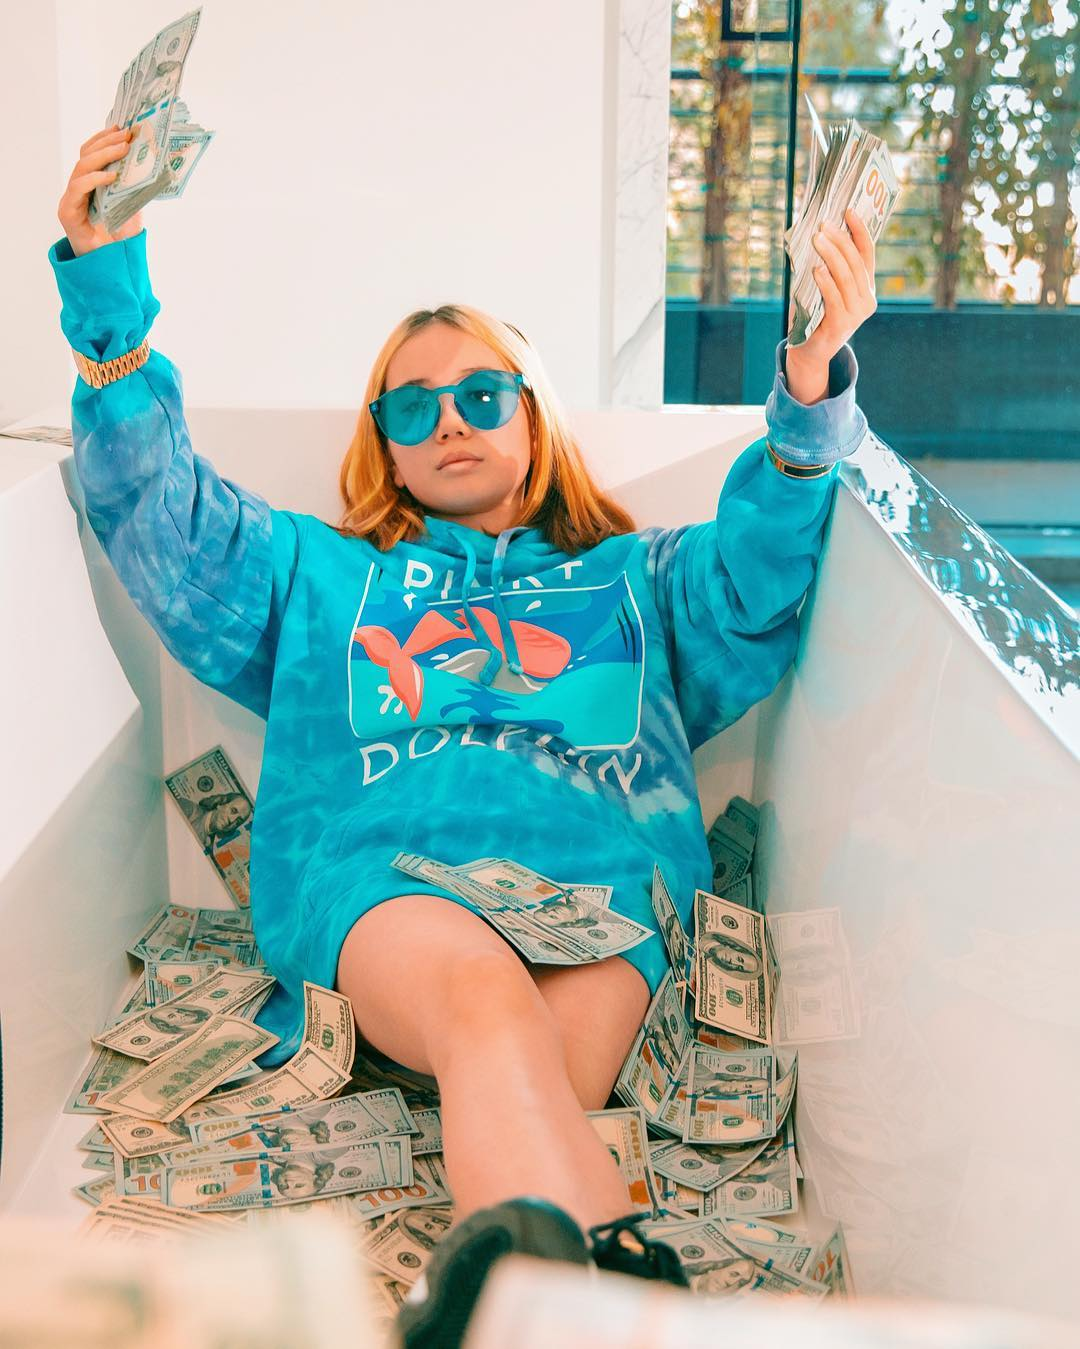 Lil Tay is lying on a tub with money all over her